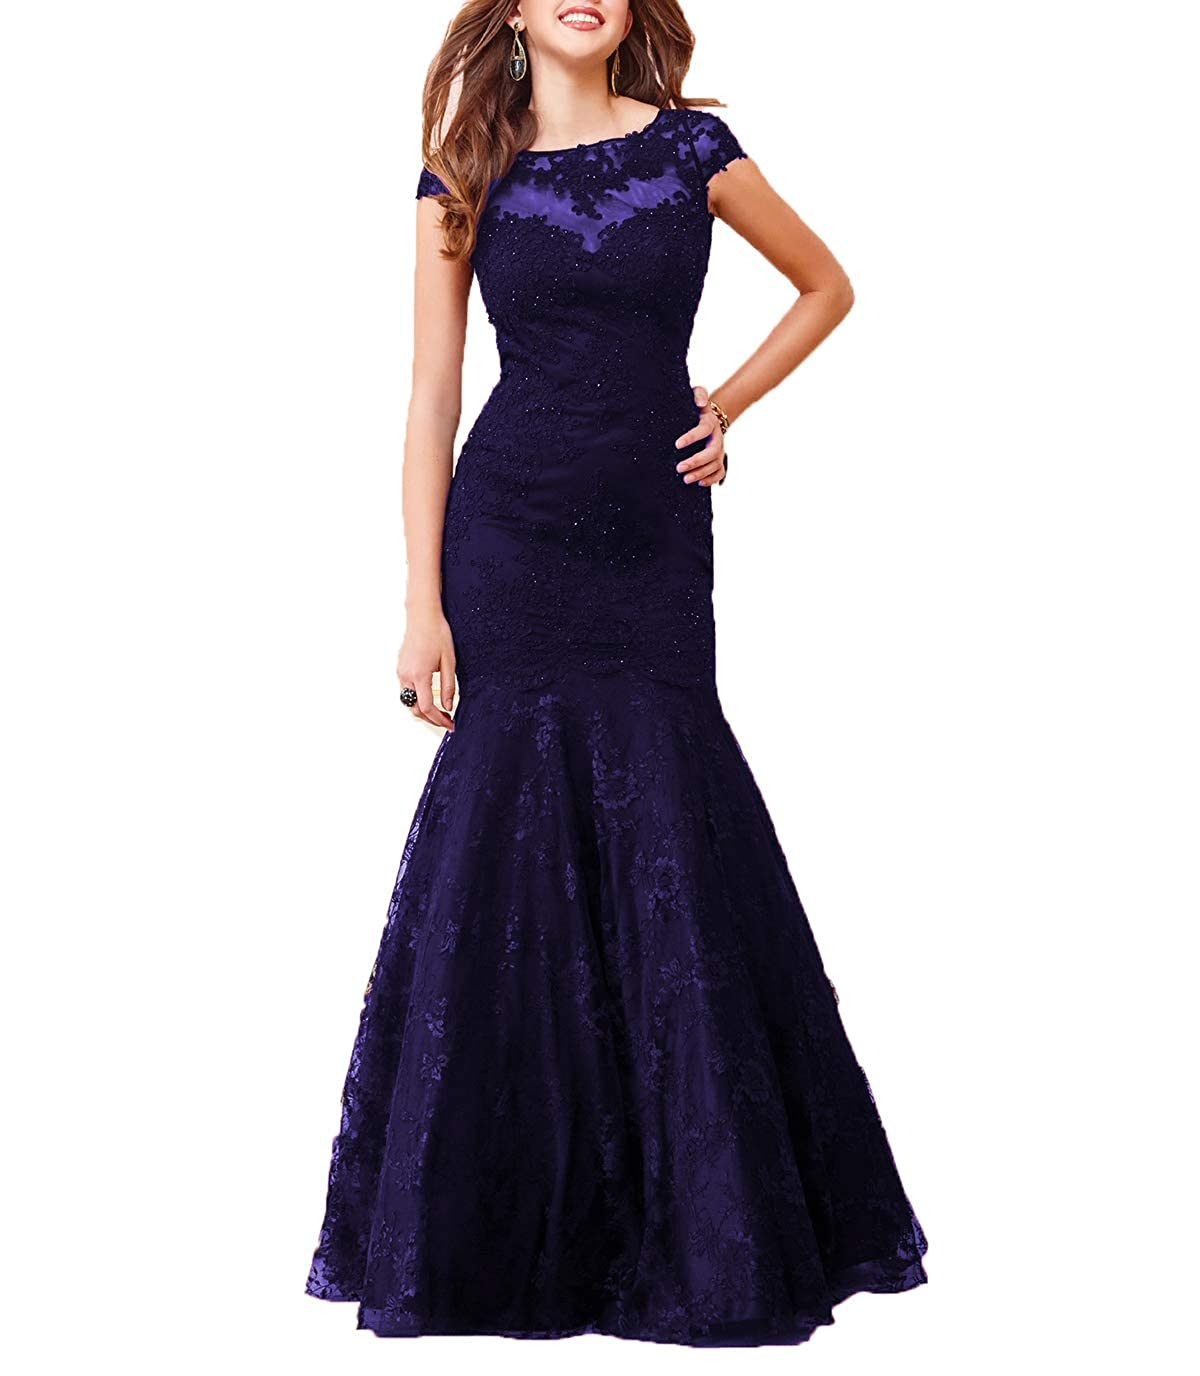 bluee Wanshaqin Cap Sleeve Lace Mermaid Prom Formal Dresses Evening Cocktail Dress Bridesmaid Gowns for Events Party